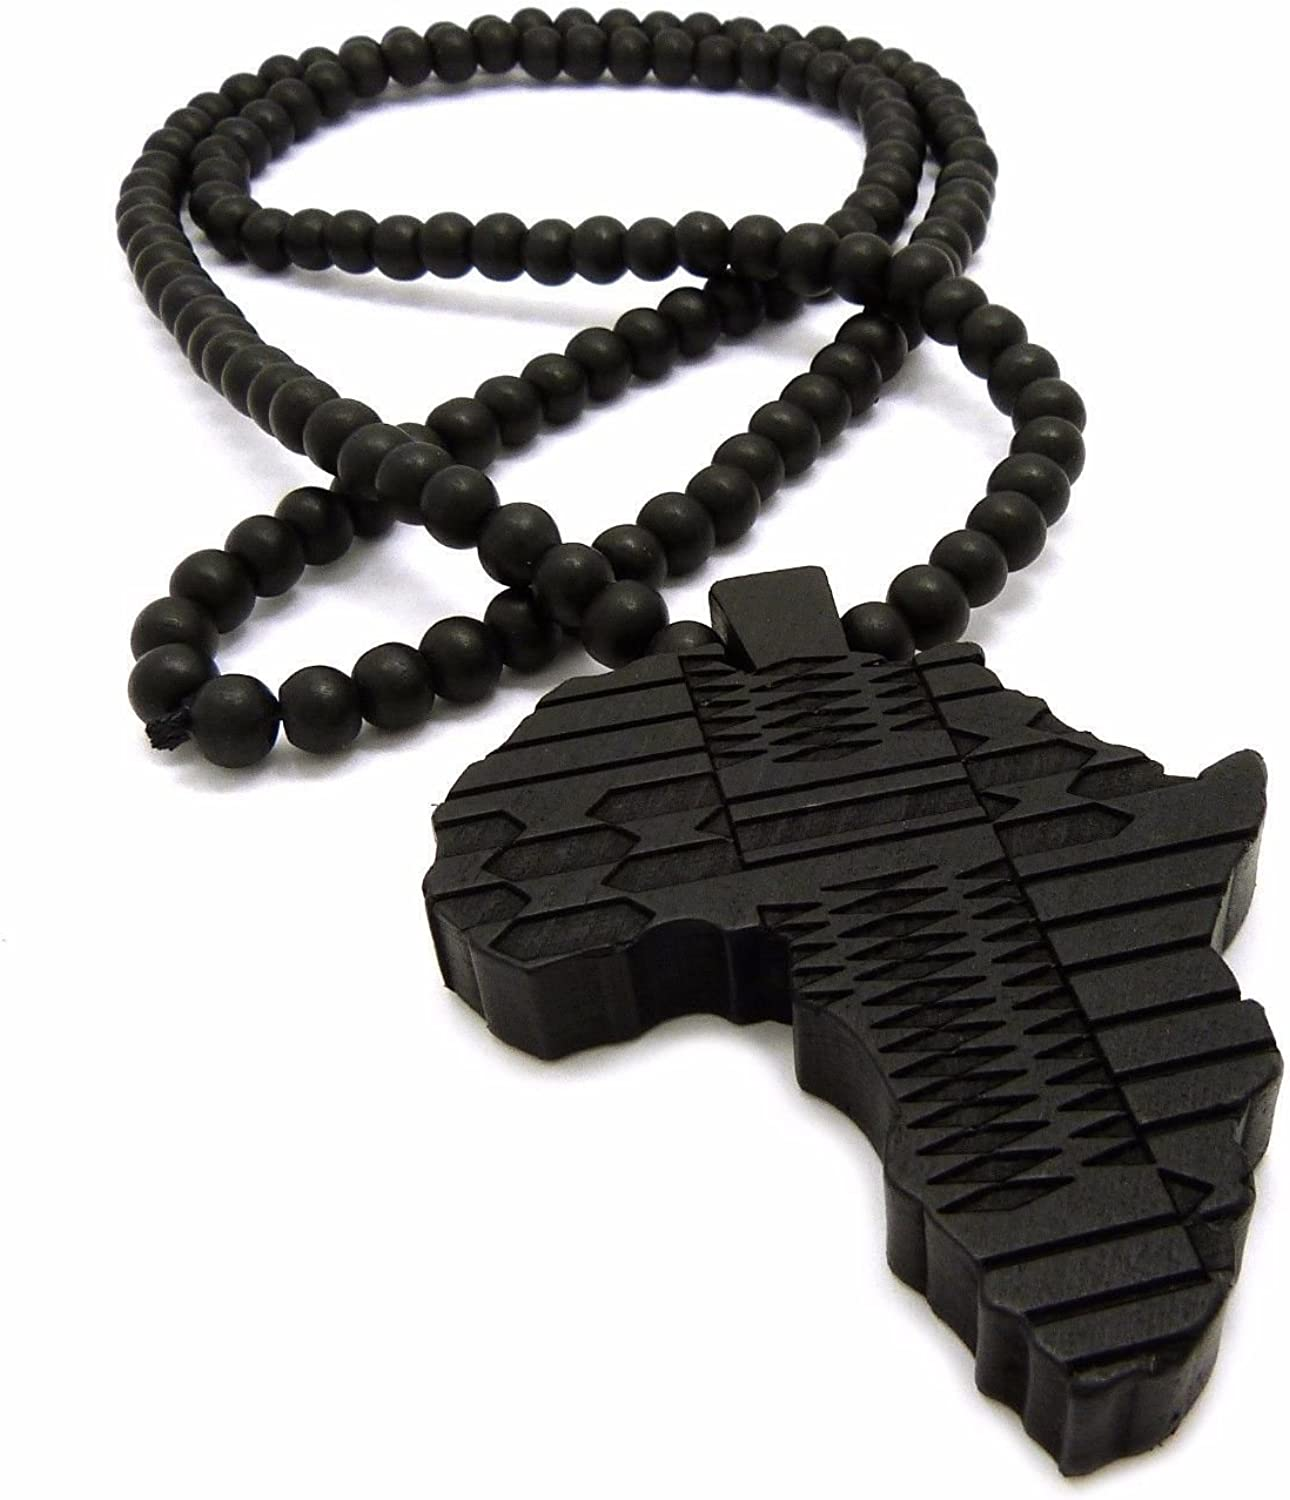 AFRICA MAP FIST WOODEN BEAD CHAIN NECKLACE AFRICAN POWER UNITY